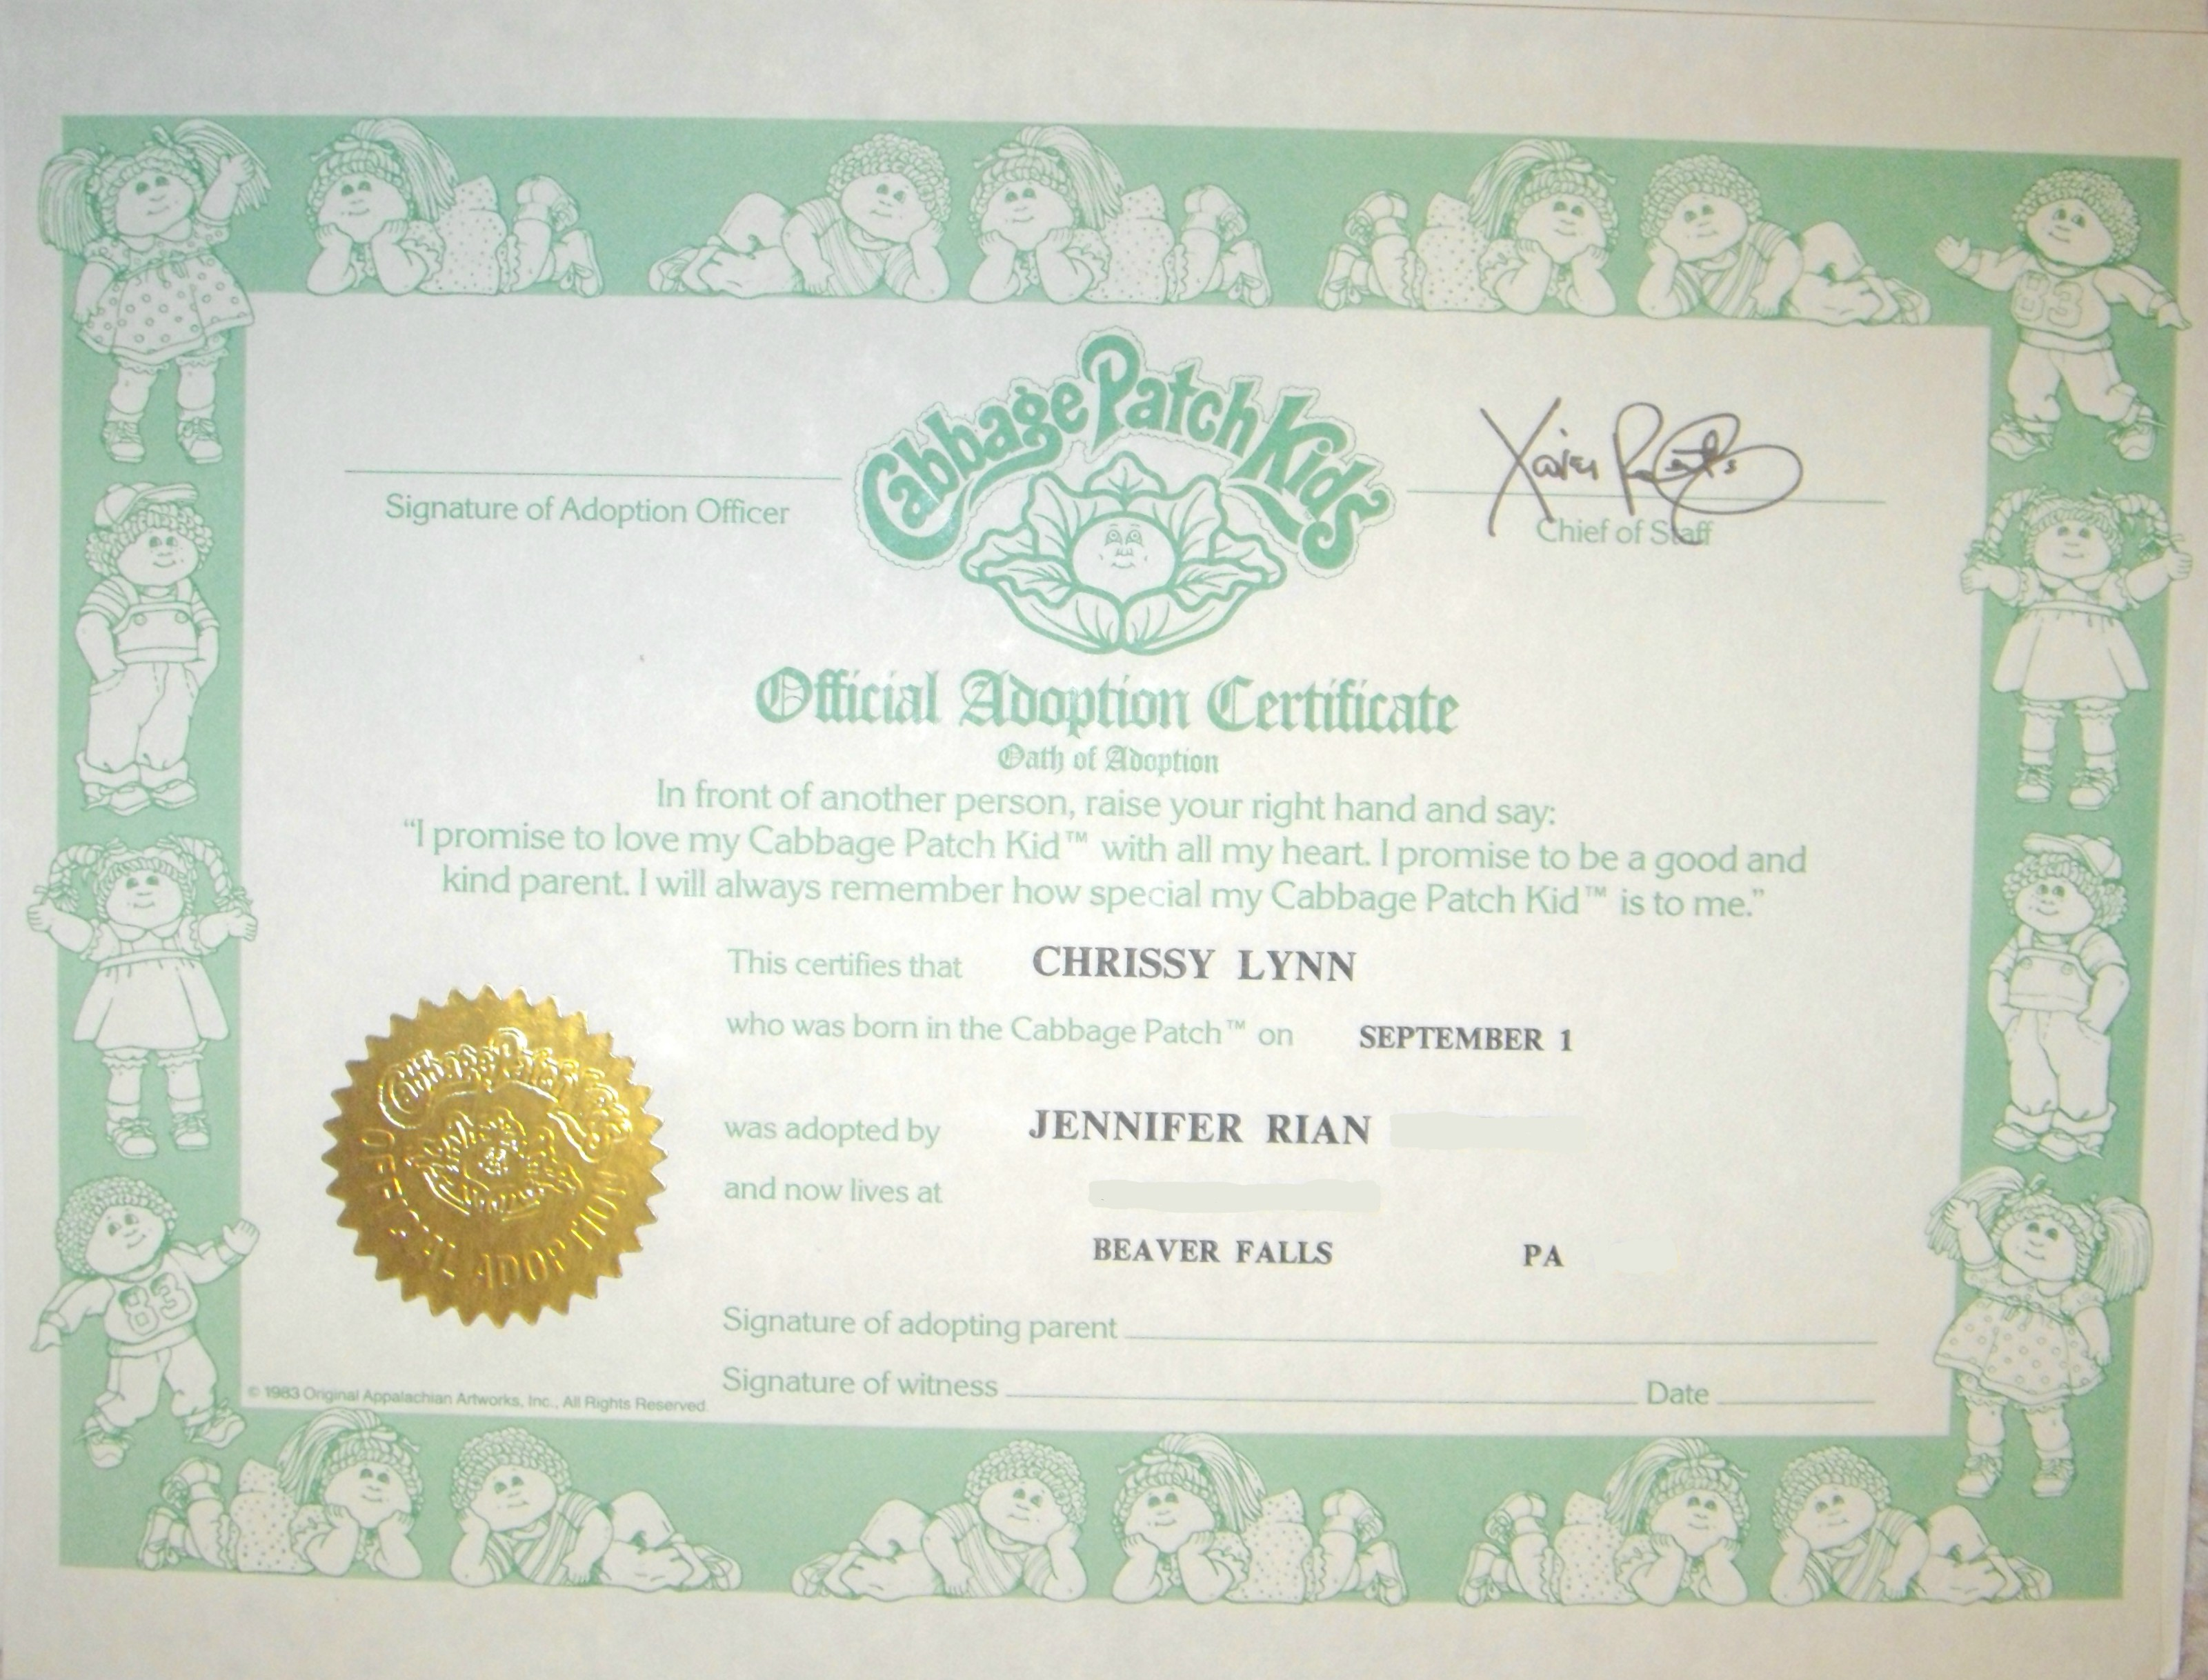 http://coolestfamilyontheblock.files.wordpress.com/2010/12/1984-12-25-cabbage-patch-adoption-certificate-imgp6402.jpg